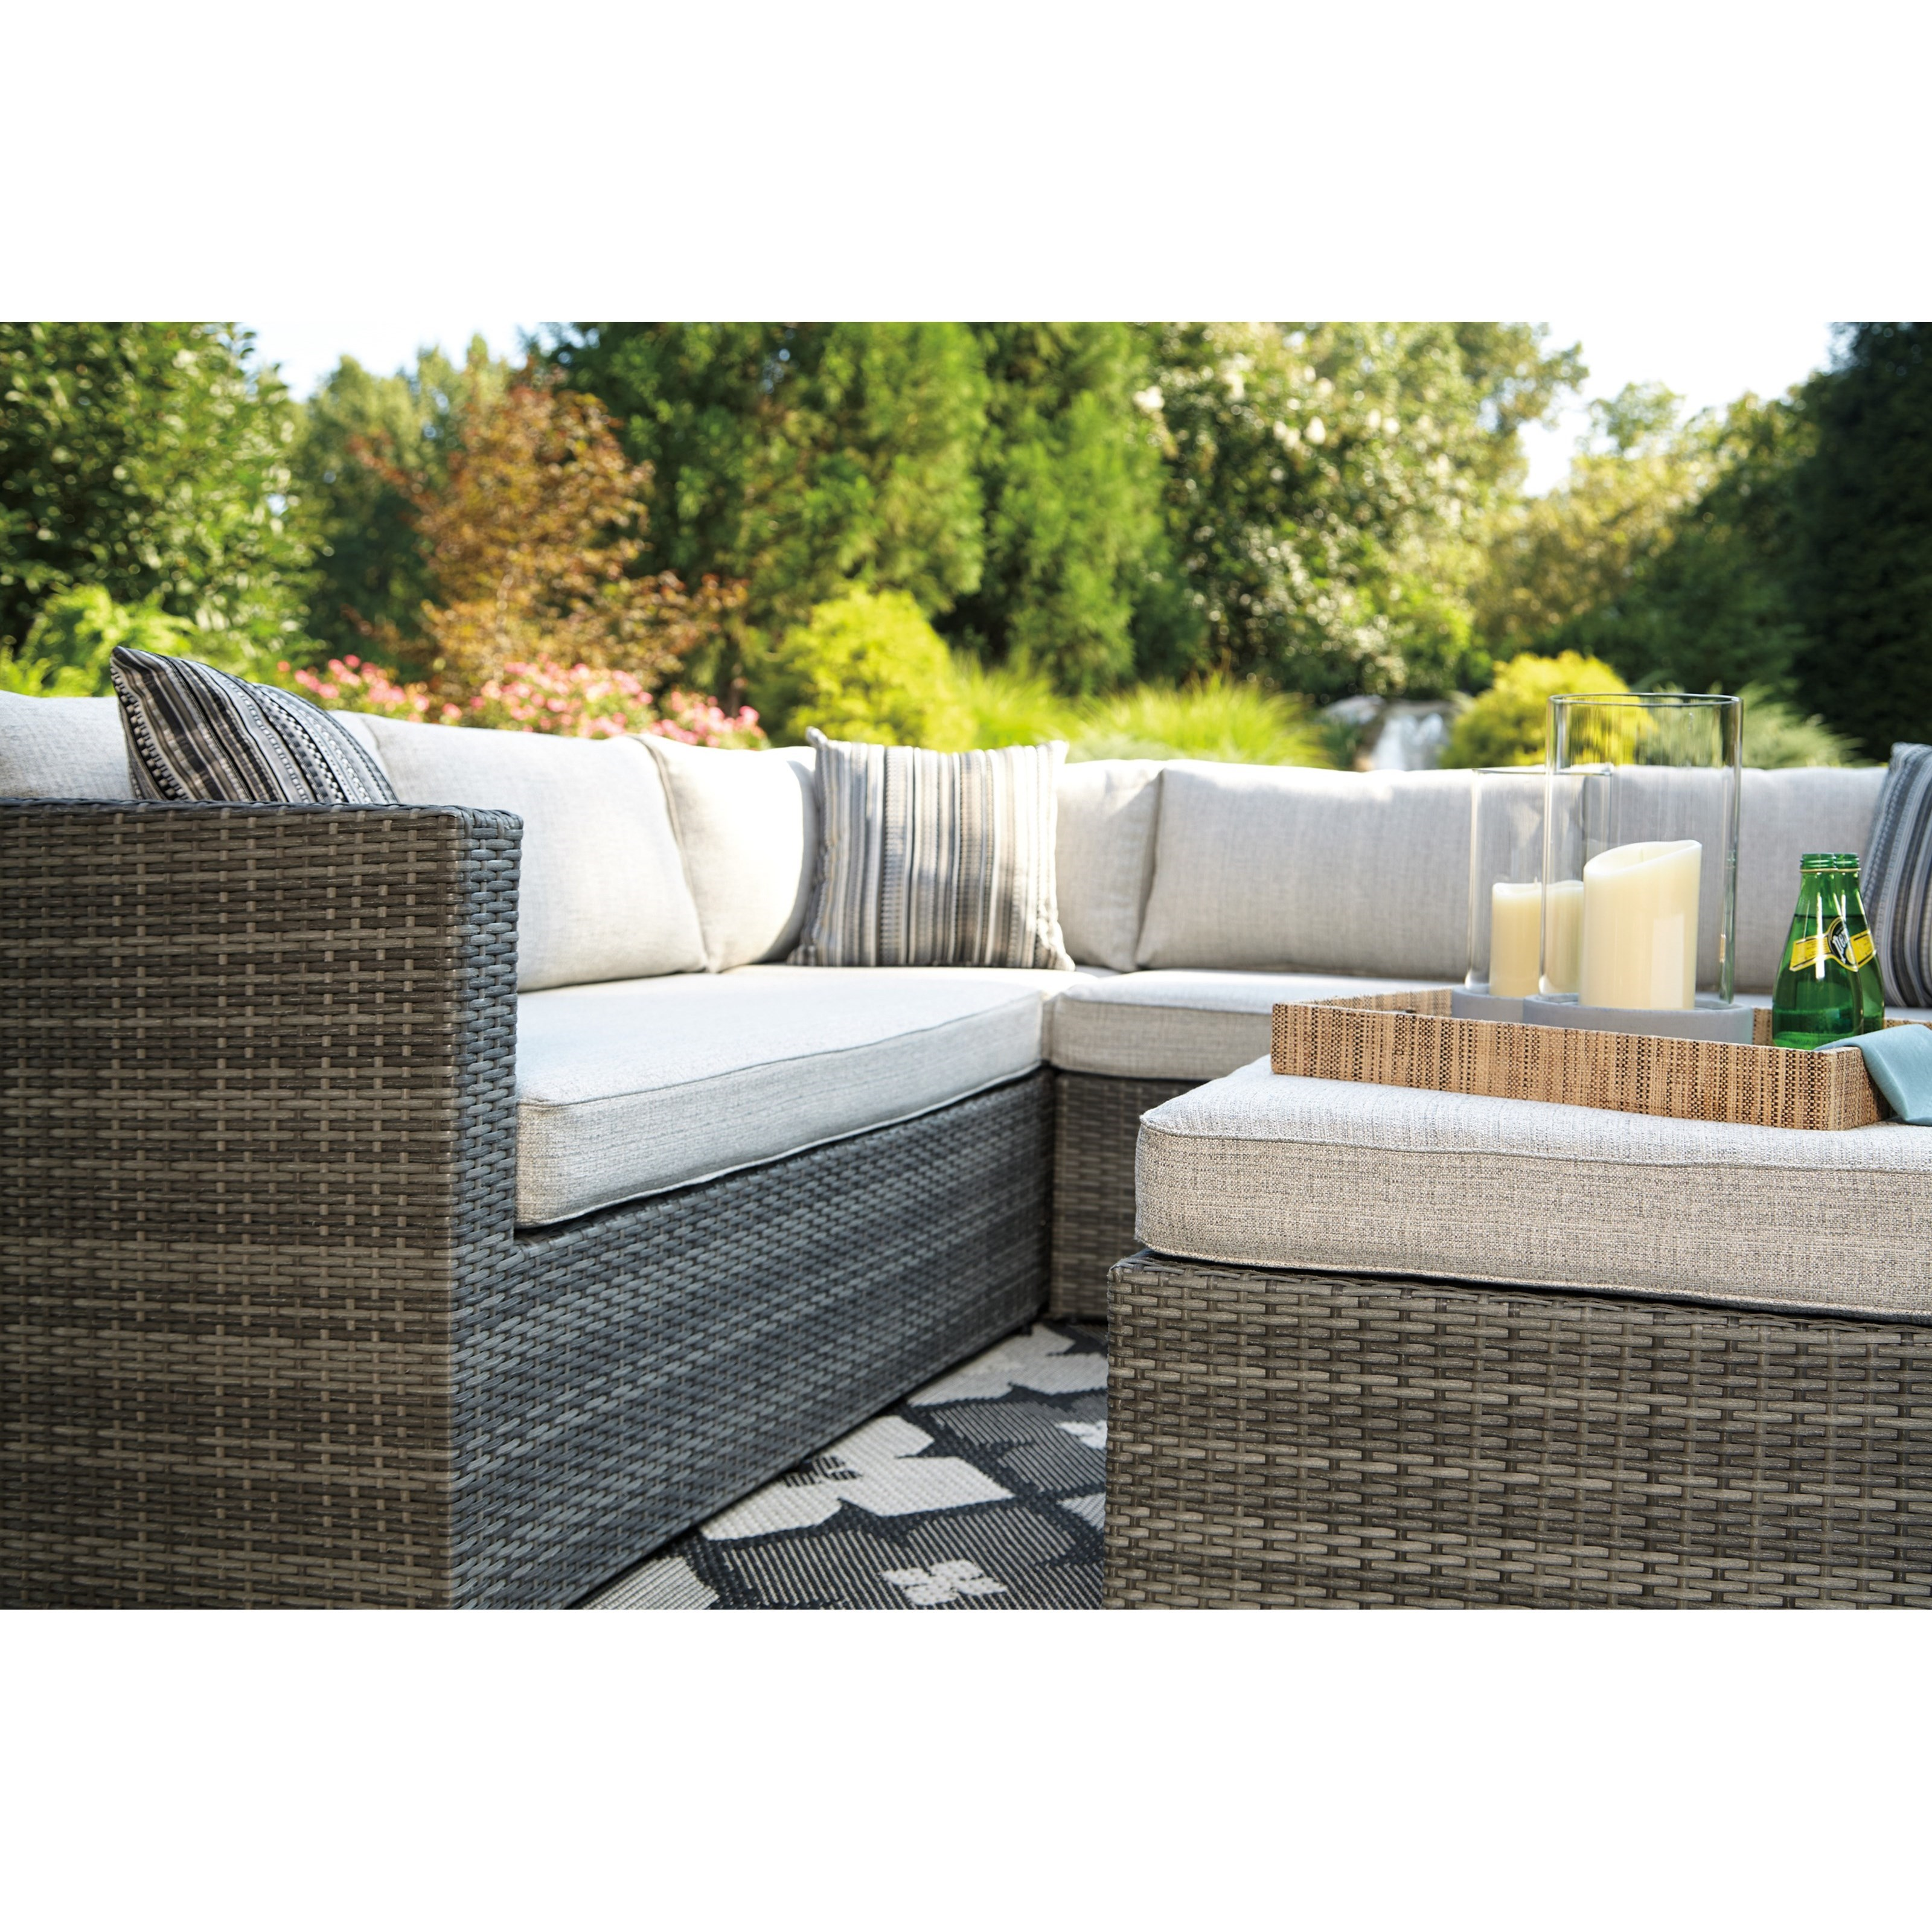 Outdoor Sectional Set with Ottoman by Signature Design by Ashley